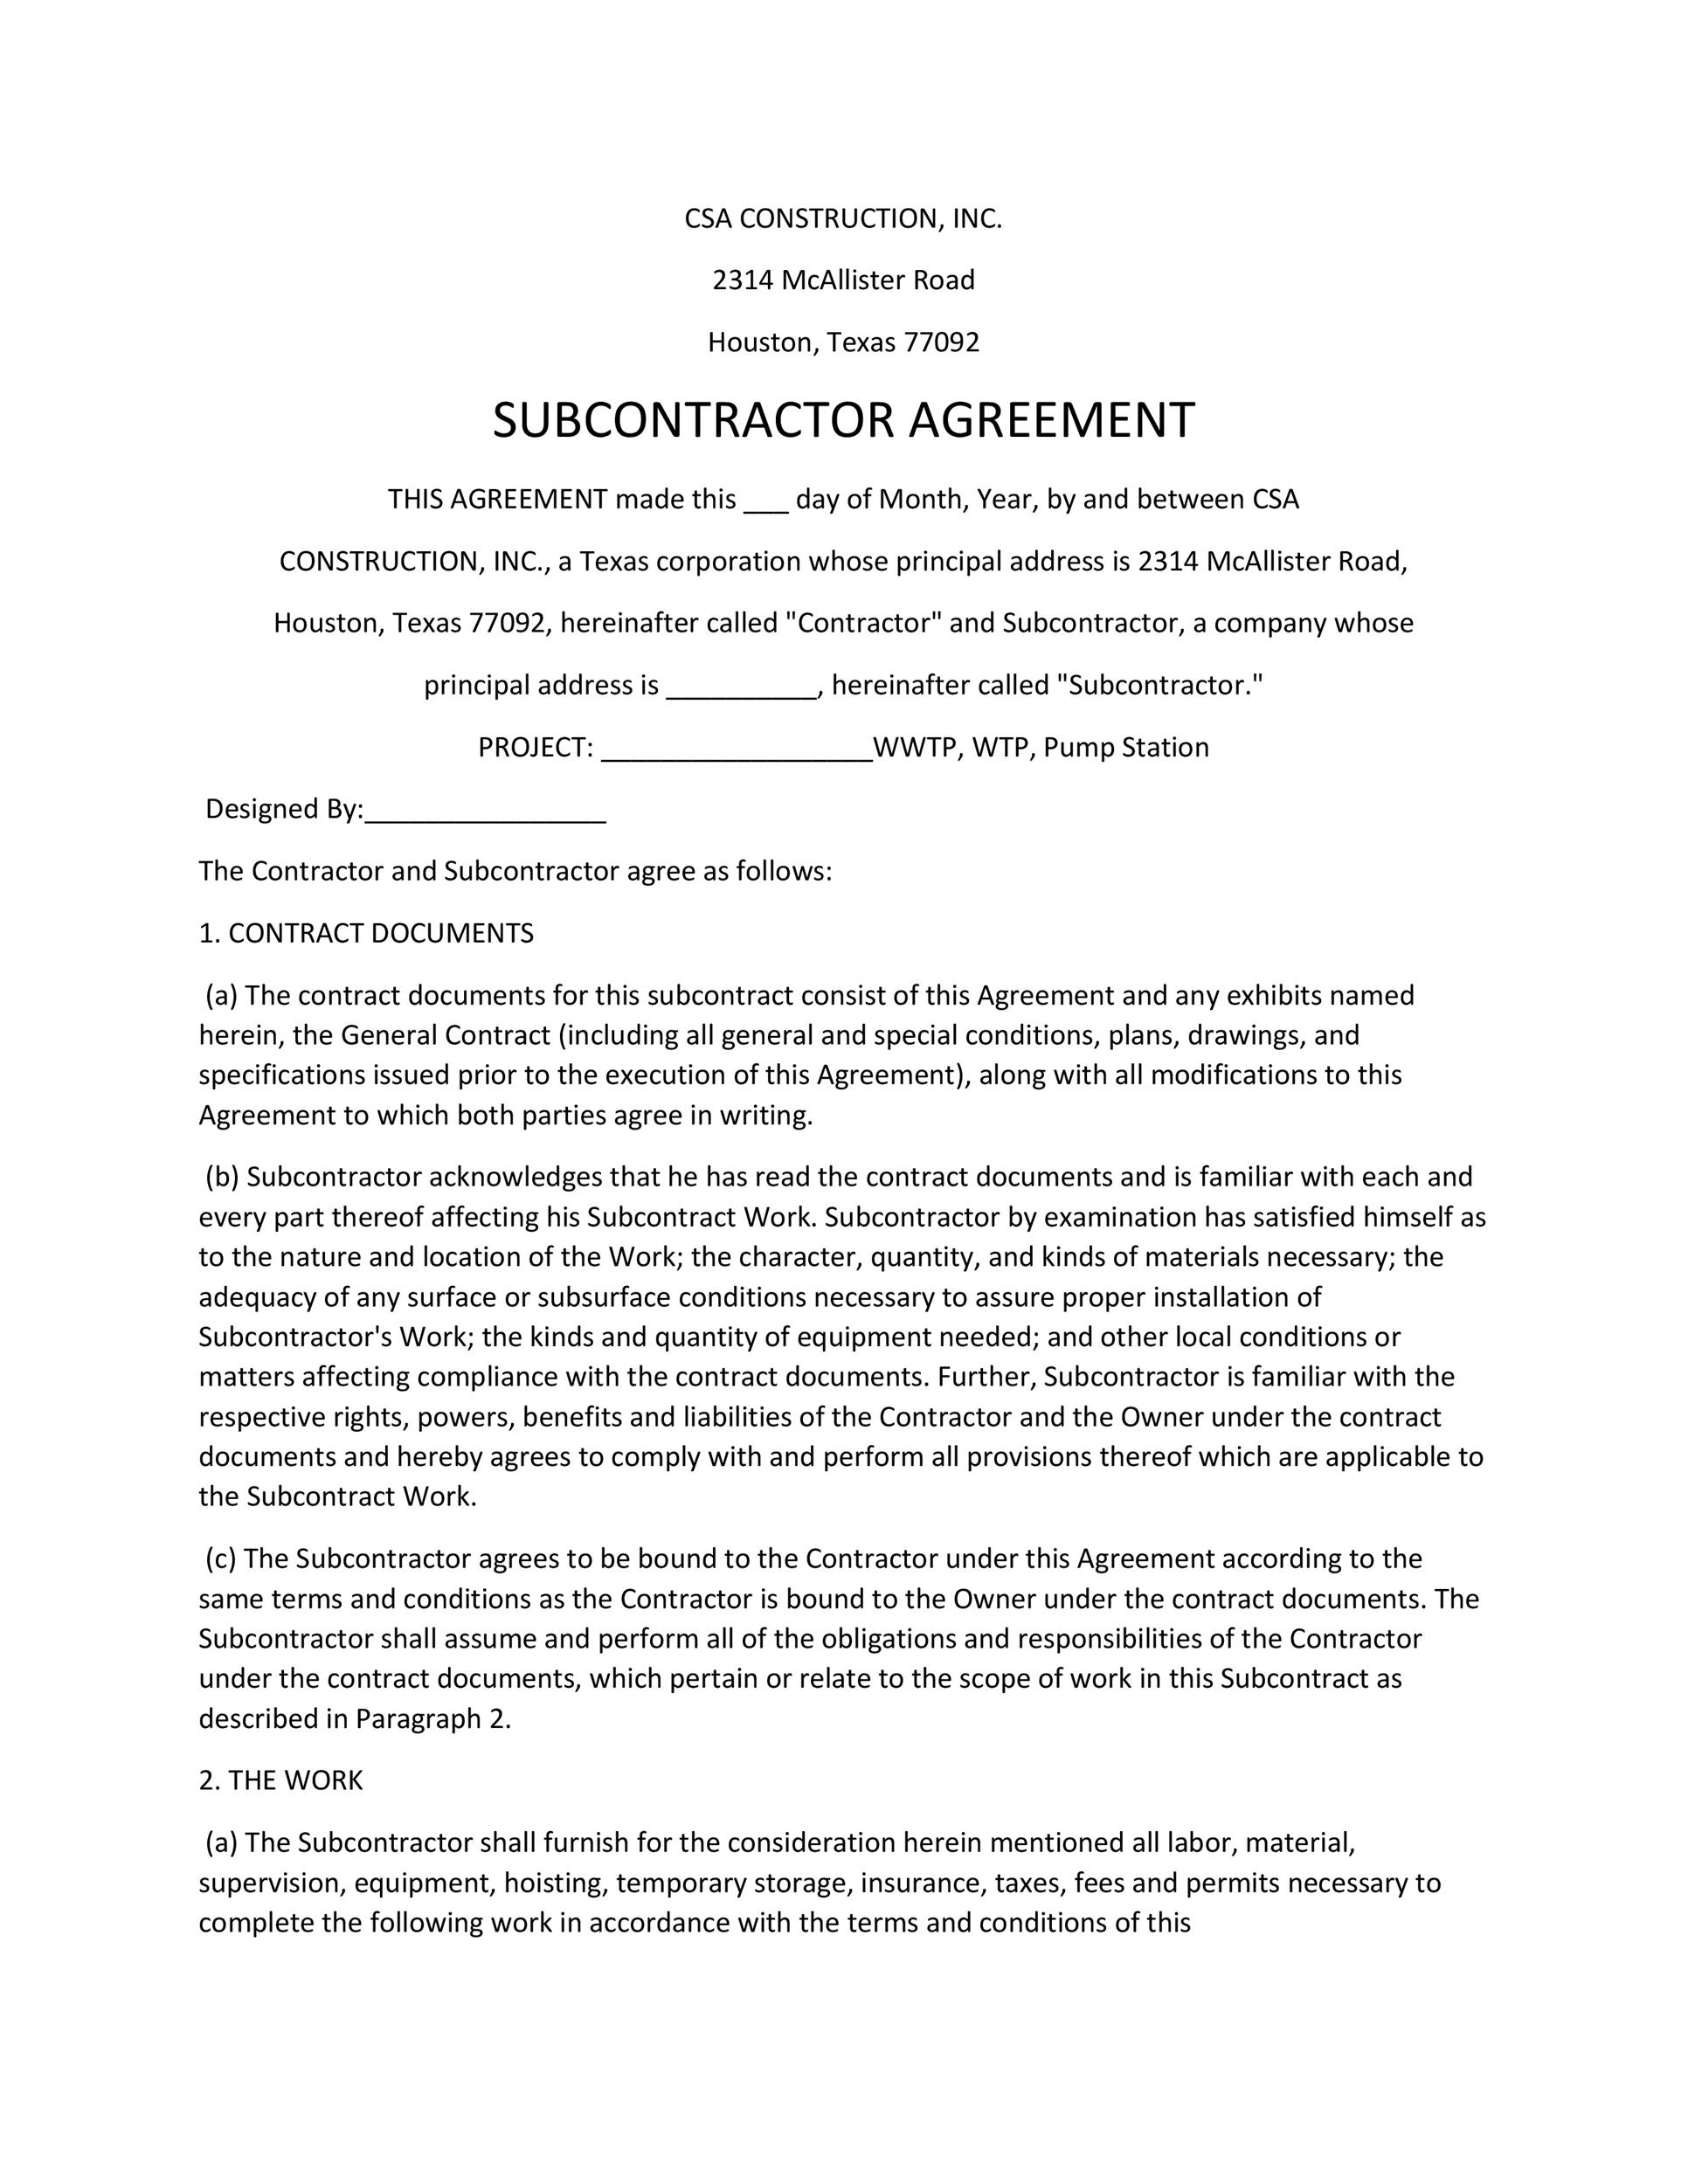 Subcontractor Agreement Form  BesikEightyCo